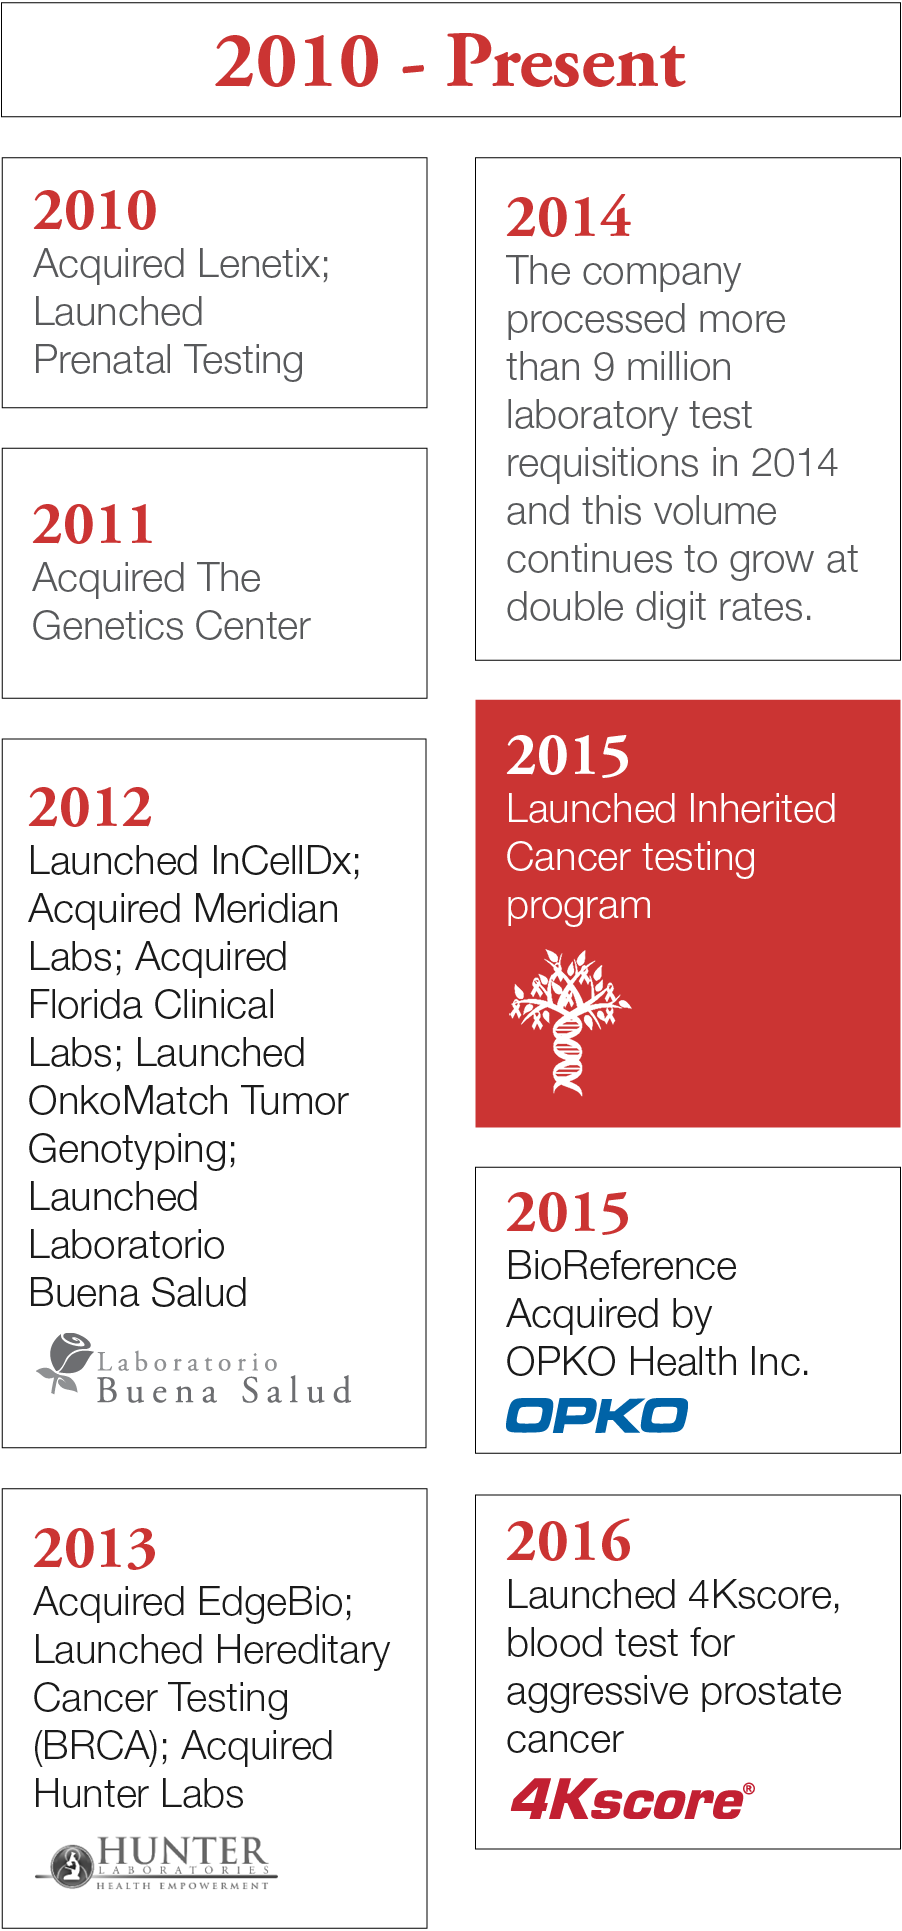 Timeline 2010 to Present: 2010 - acquired lenetix, launched prenatal testing; 2011 - acquired the genetics center; 2012 launched inceldx, acquired meridian labs, acquired florida clinical labs, launched onkomatch tumor genotyping, launched laboratorio buena salud; 2013 - acquired edgebio, launched hereditary cancer testing (BRCA), acquired hunter labs; 2014 - the company processed more than 9 million laboratory test requisitions in 2014 and this volume continues to grow at double digit rates; 2015 - launched inherited cancer testing program; 2015 - bioreference aquired by OPKO health inc.; 2016 - launched 4Kscore, blood test for aggressive prostate cancer